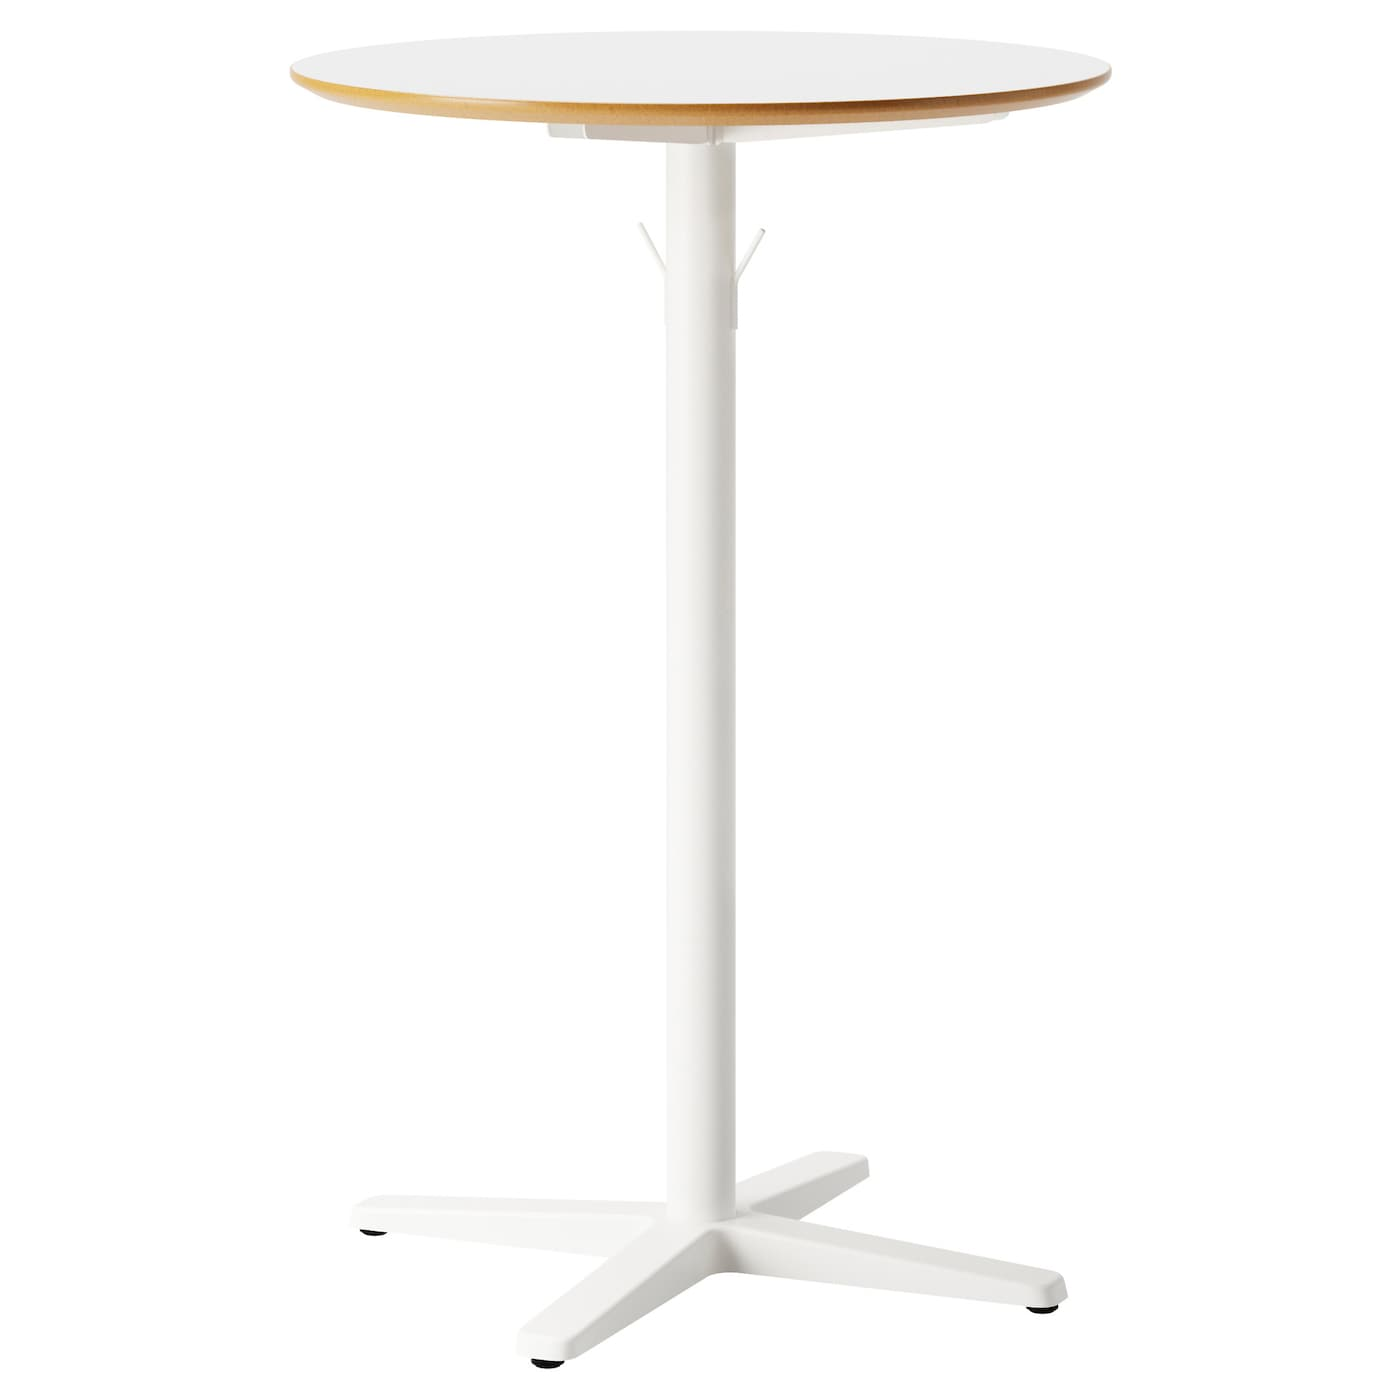 billsta bar table white white 70 cm ikea. Black Bedroom Furniture Sets. Home Design Ideas